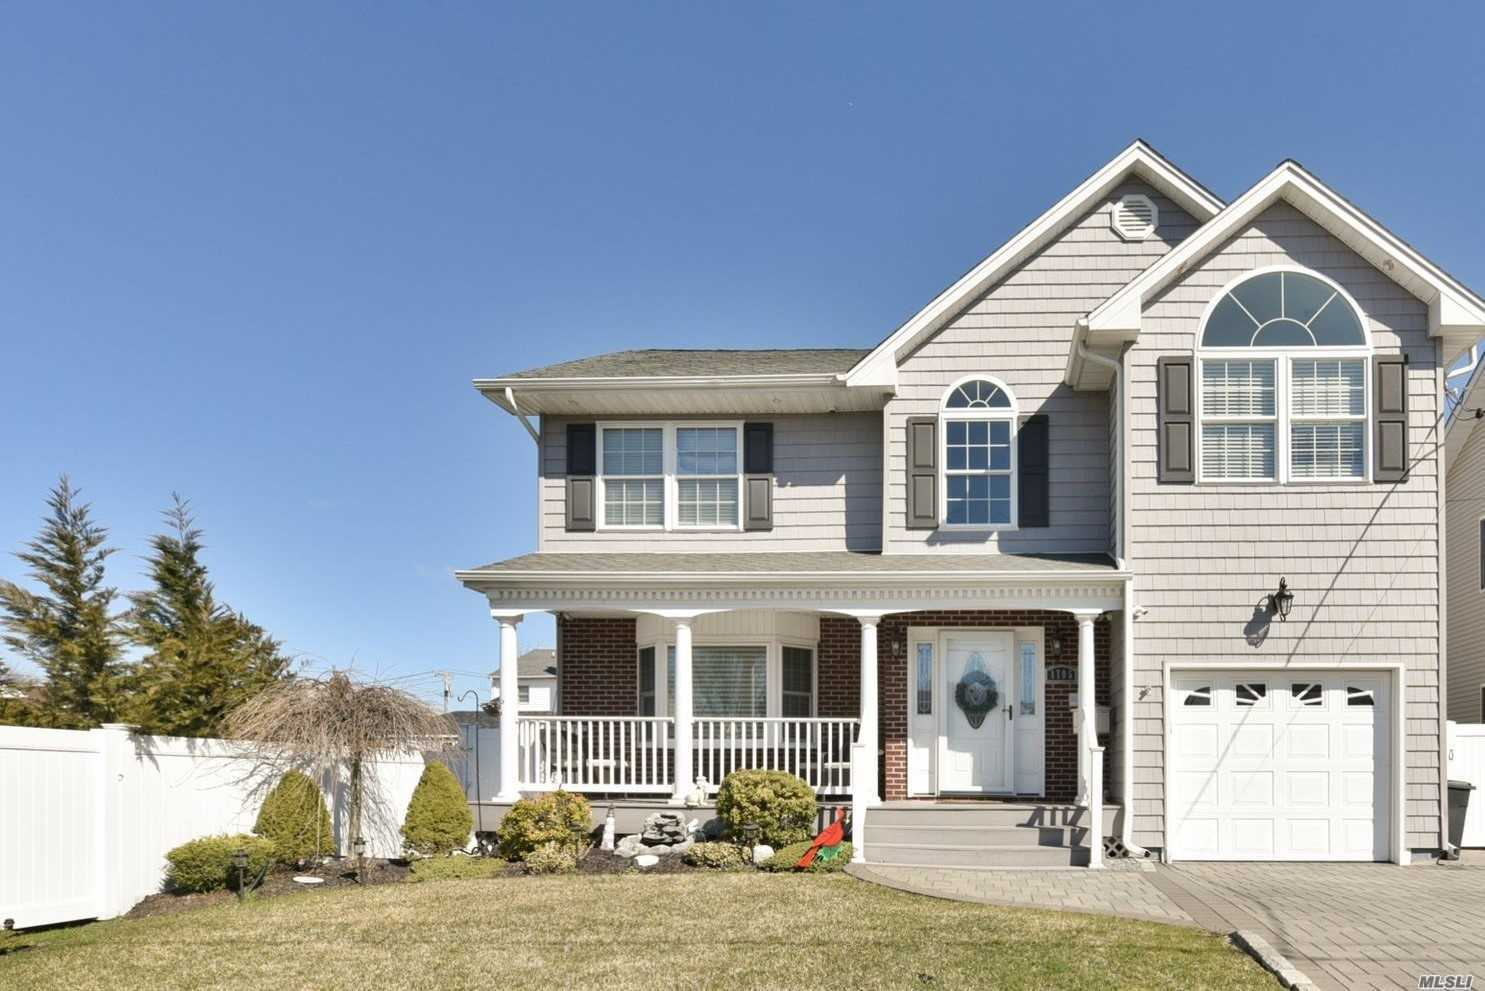 Built in 2008 and Renovated again 2017. Gorgeous Colonial with Gourmet Kitchen, Pantry and Stainless App/ Mstr Suite w/ Dream WIC. Full Finished Bsmt w/ Family Rm and Theatre. Resort Backyard w/IG Salt Pool and Hot Tub, Exterior Lounge area w/ TV. Too much too list. This Home must be seen!